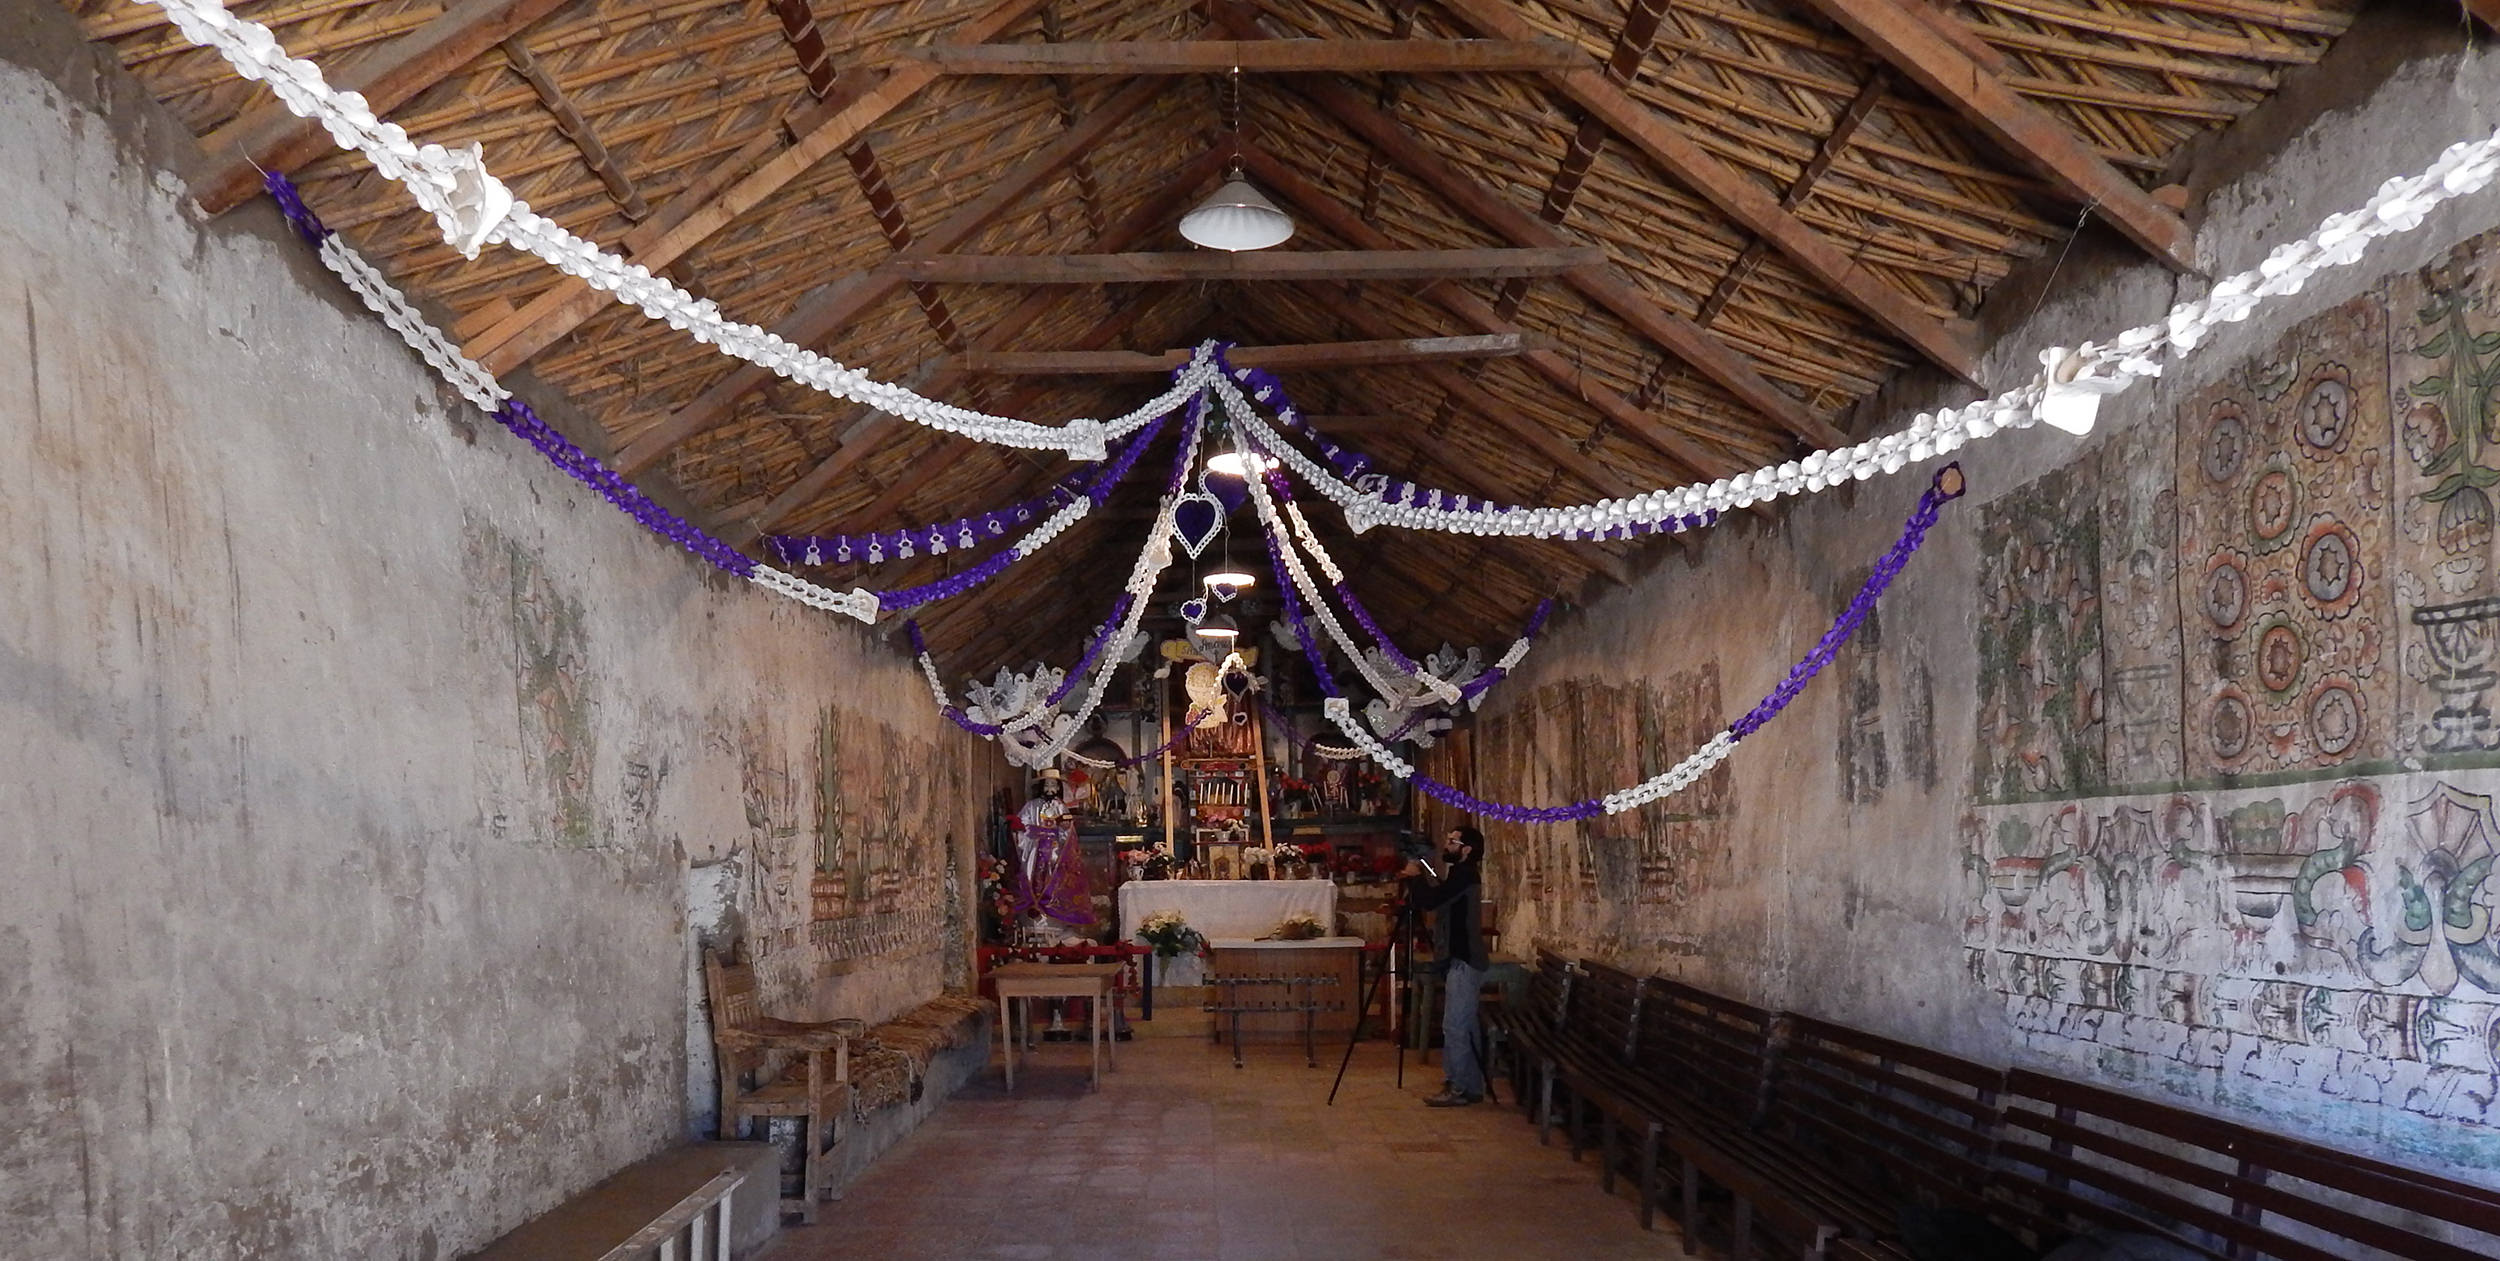 Fig. 21 Interior view, Church of Pachama, 18th century, Arica and Parinacota Region (Chile). Photo by author.